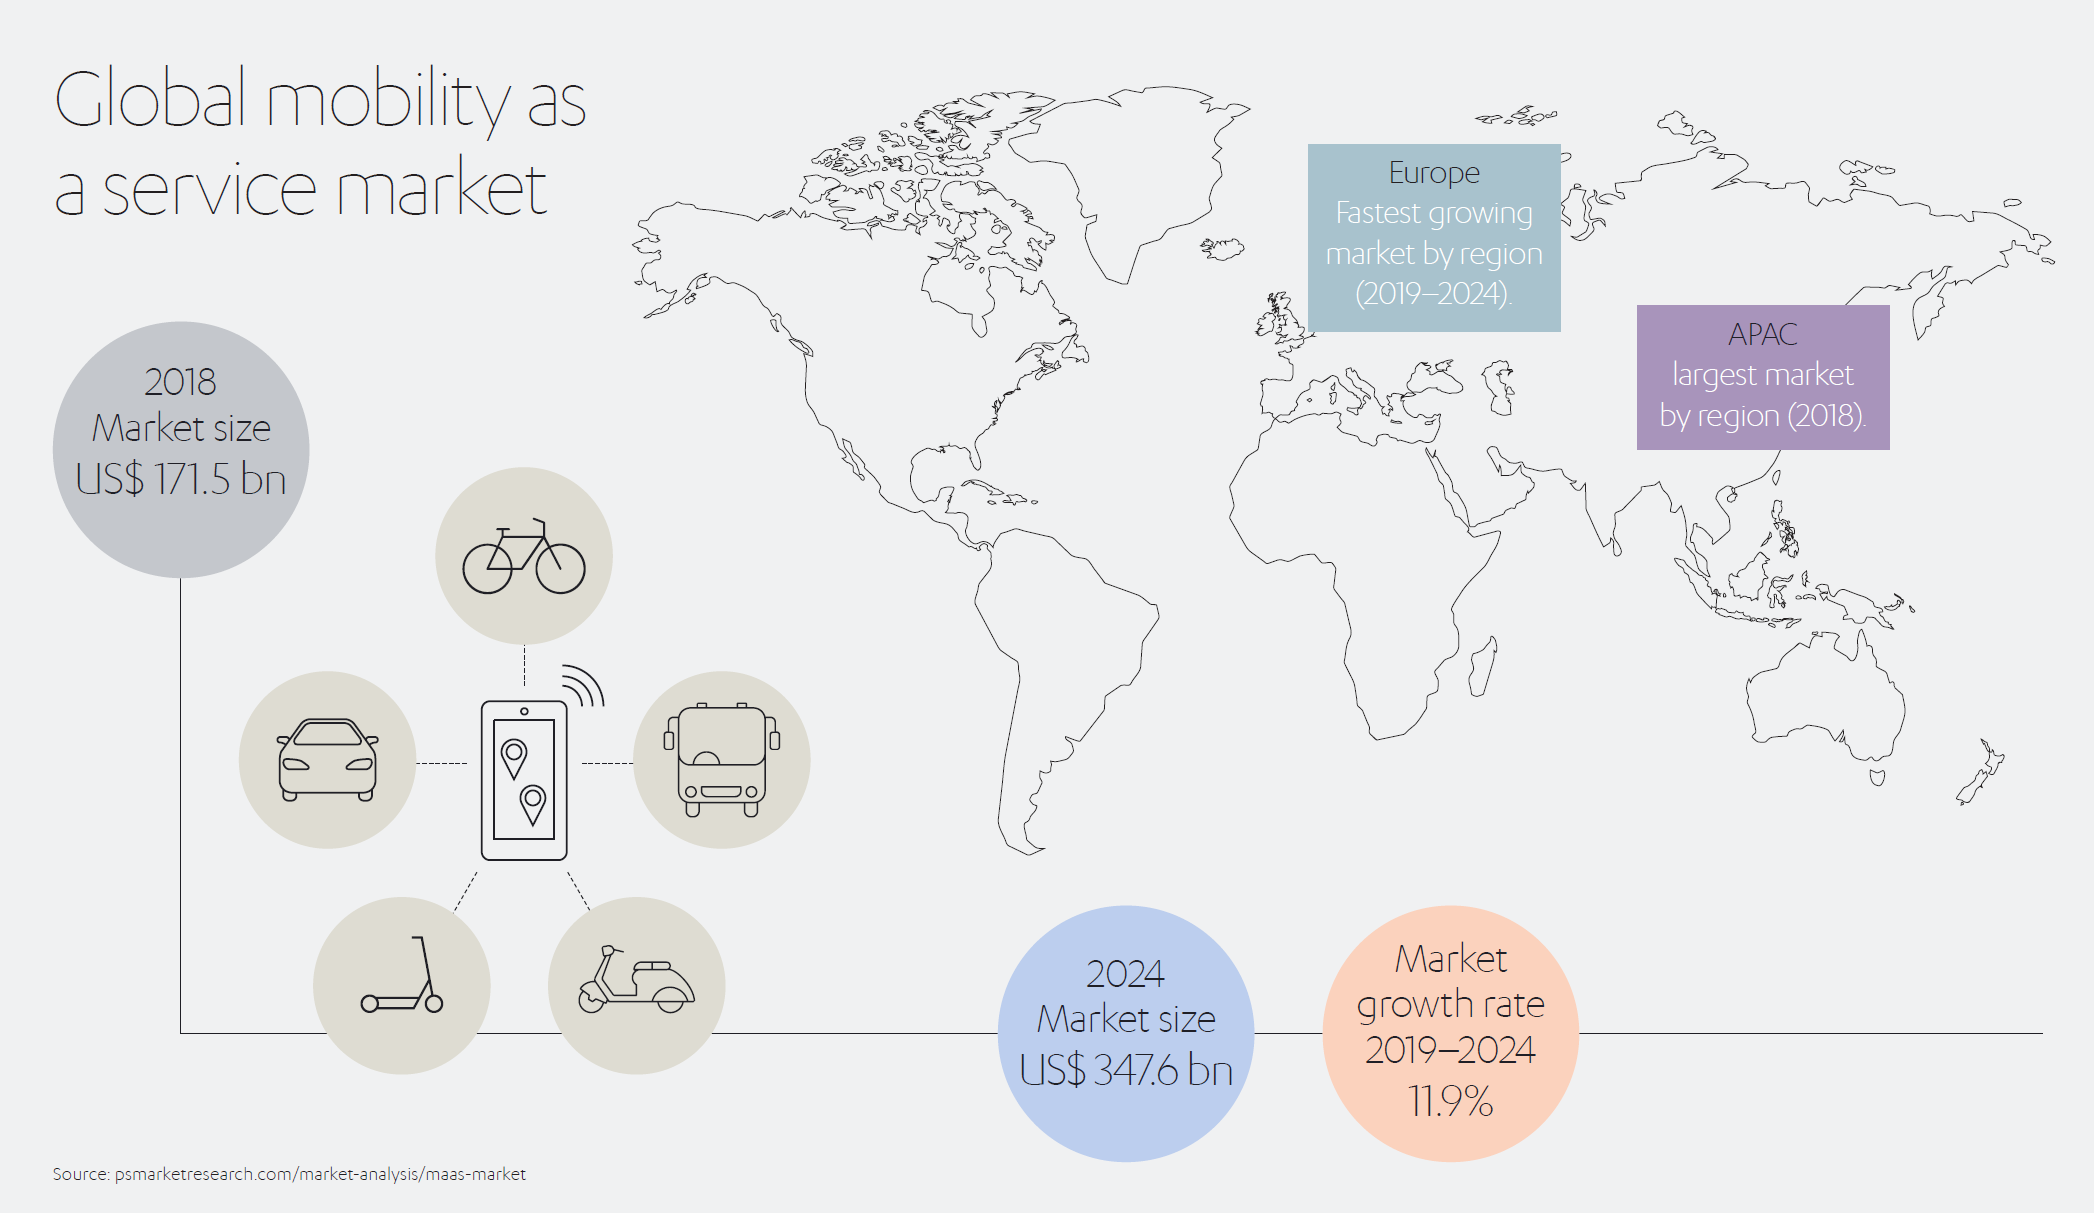 Global Mobility as a Service Market